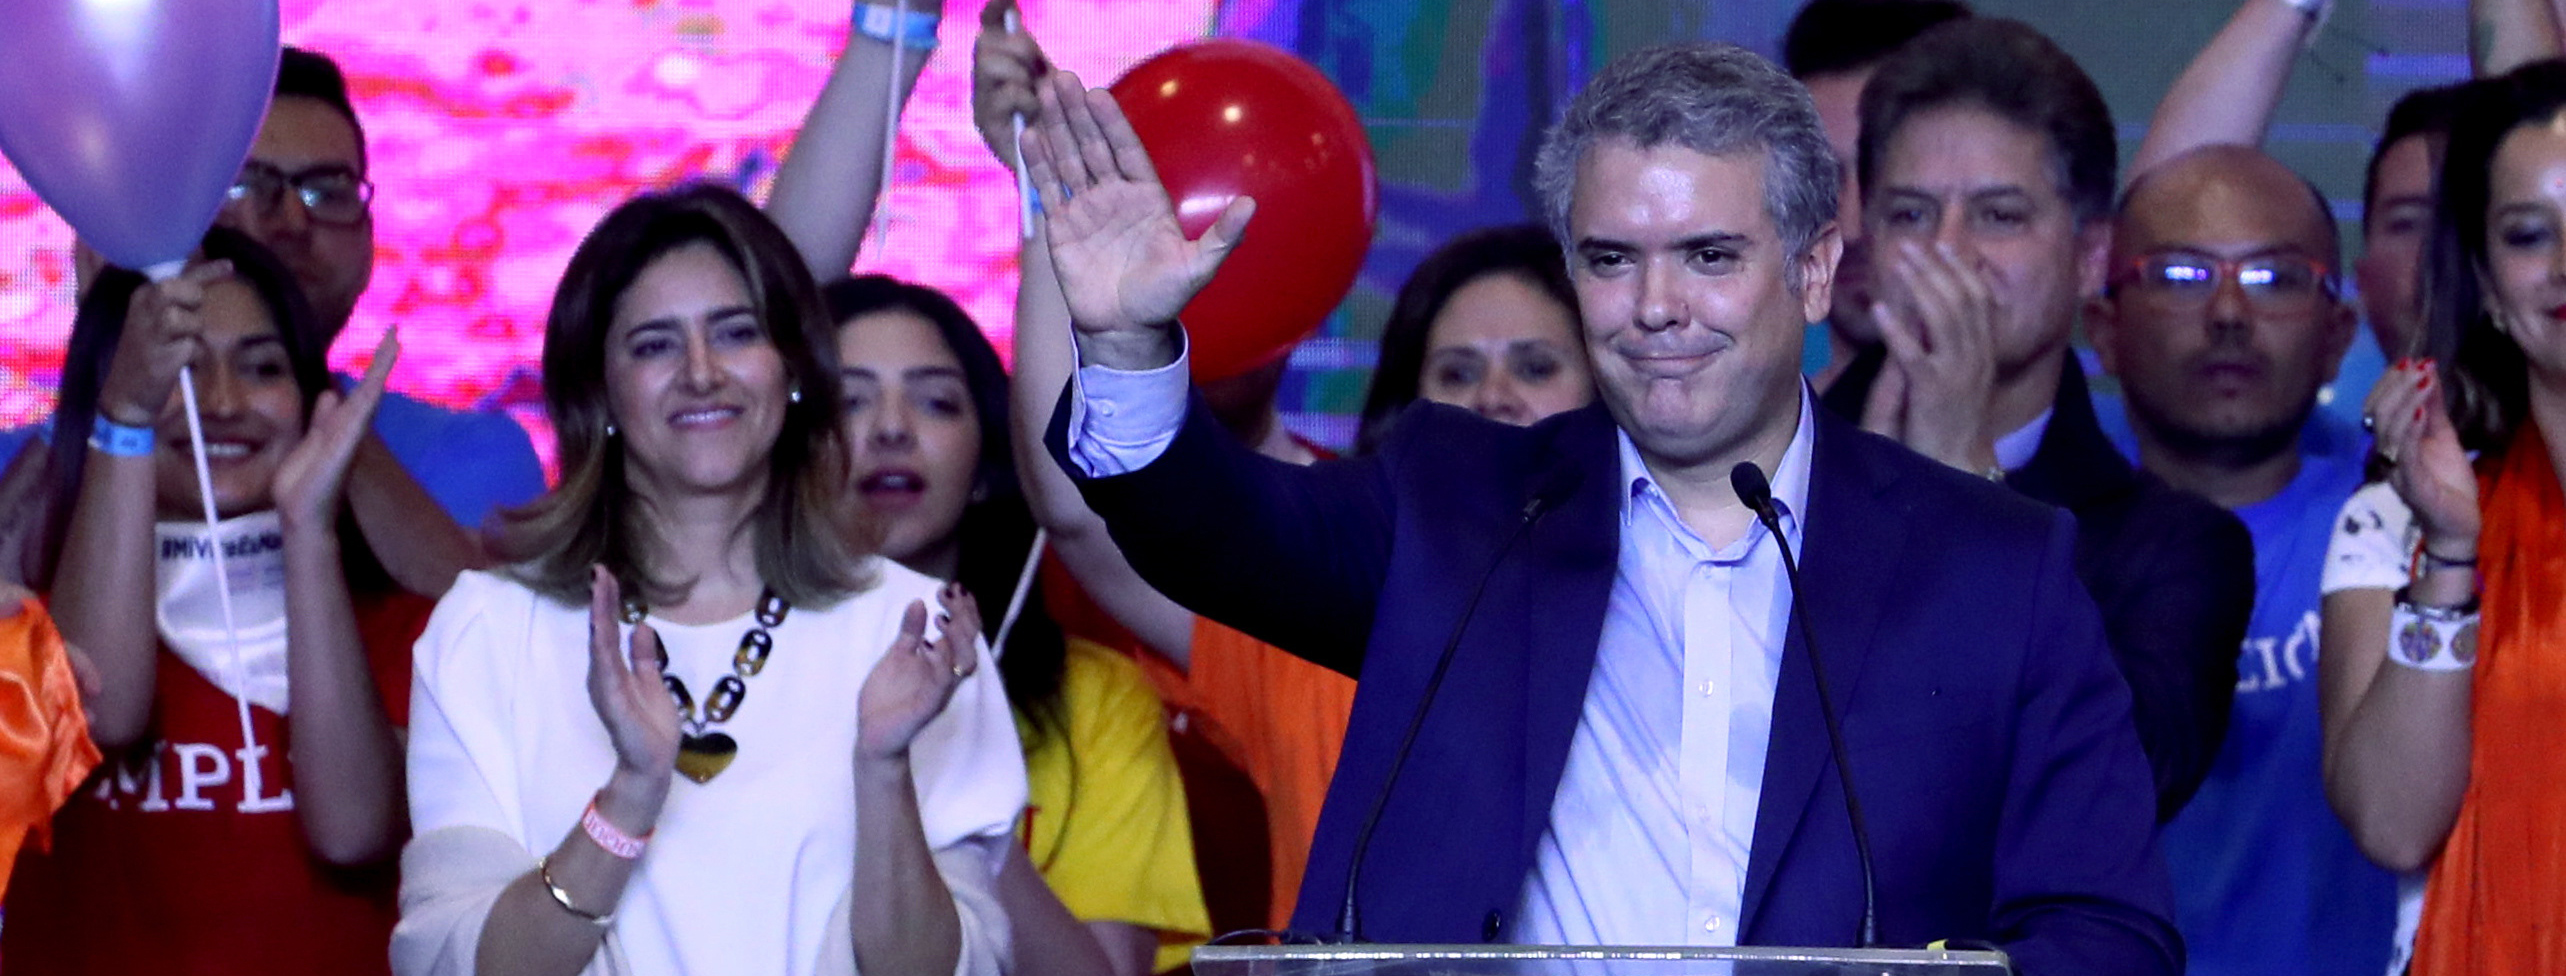 Duque wins 1st round of Colombian presidential election